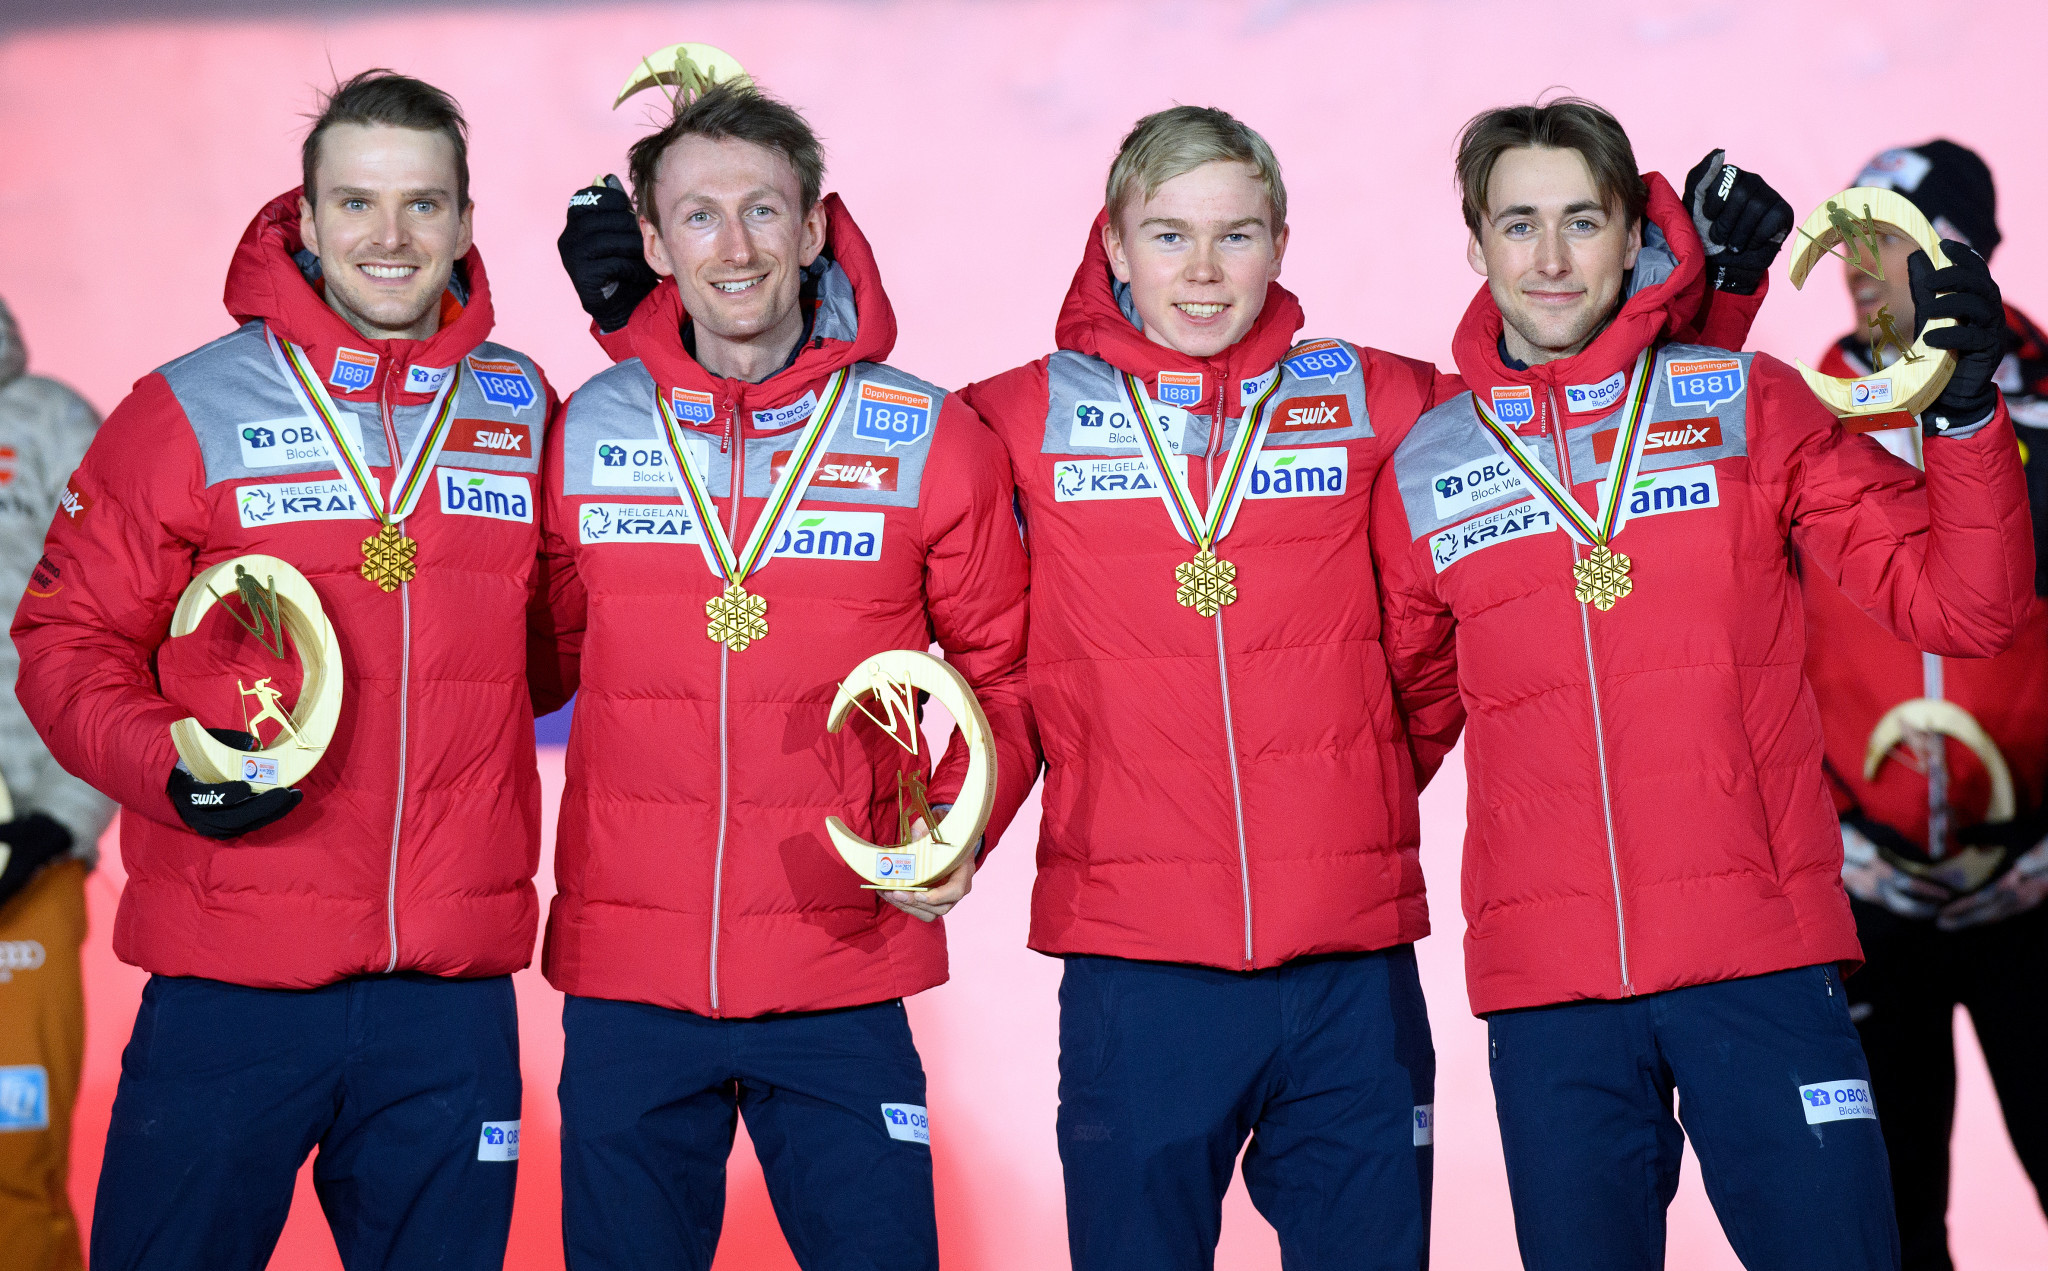 Norway have enjoyed a successful period under Peder Sandell's leadership ©Getty Images